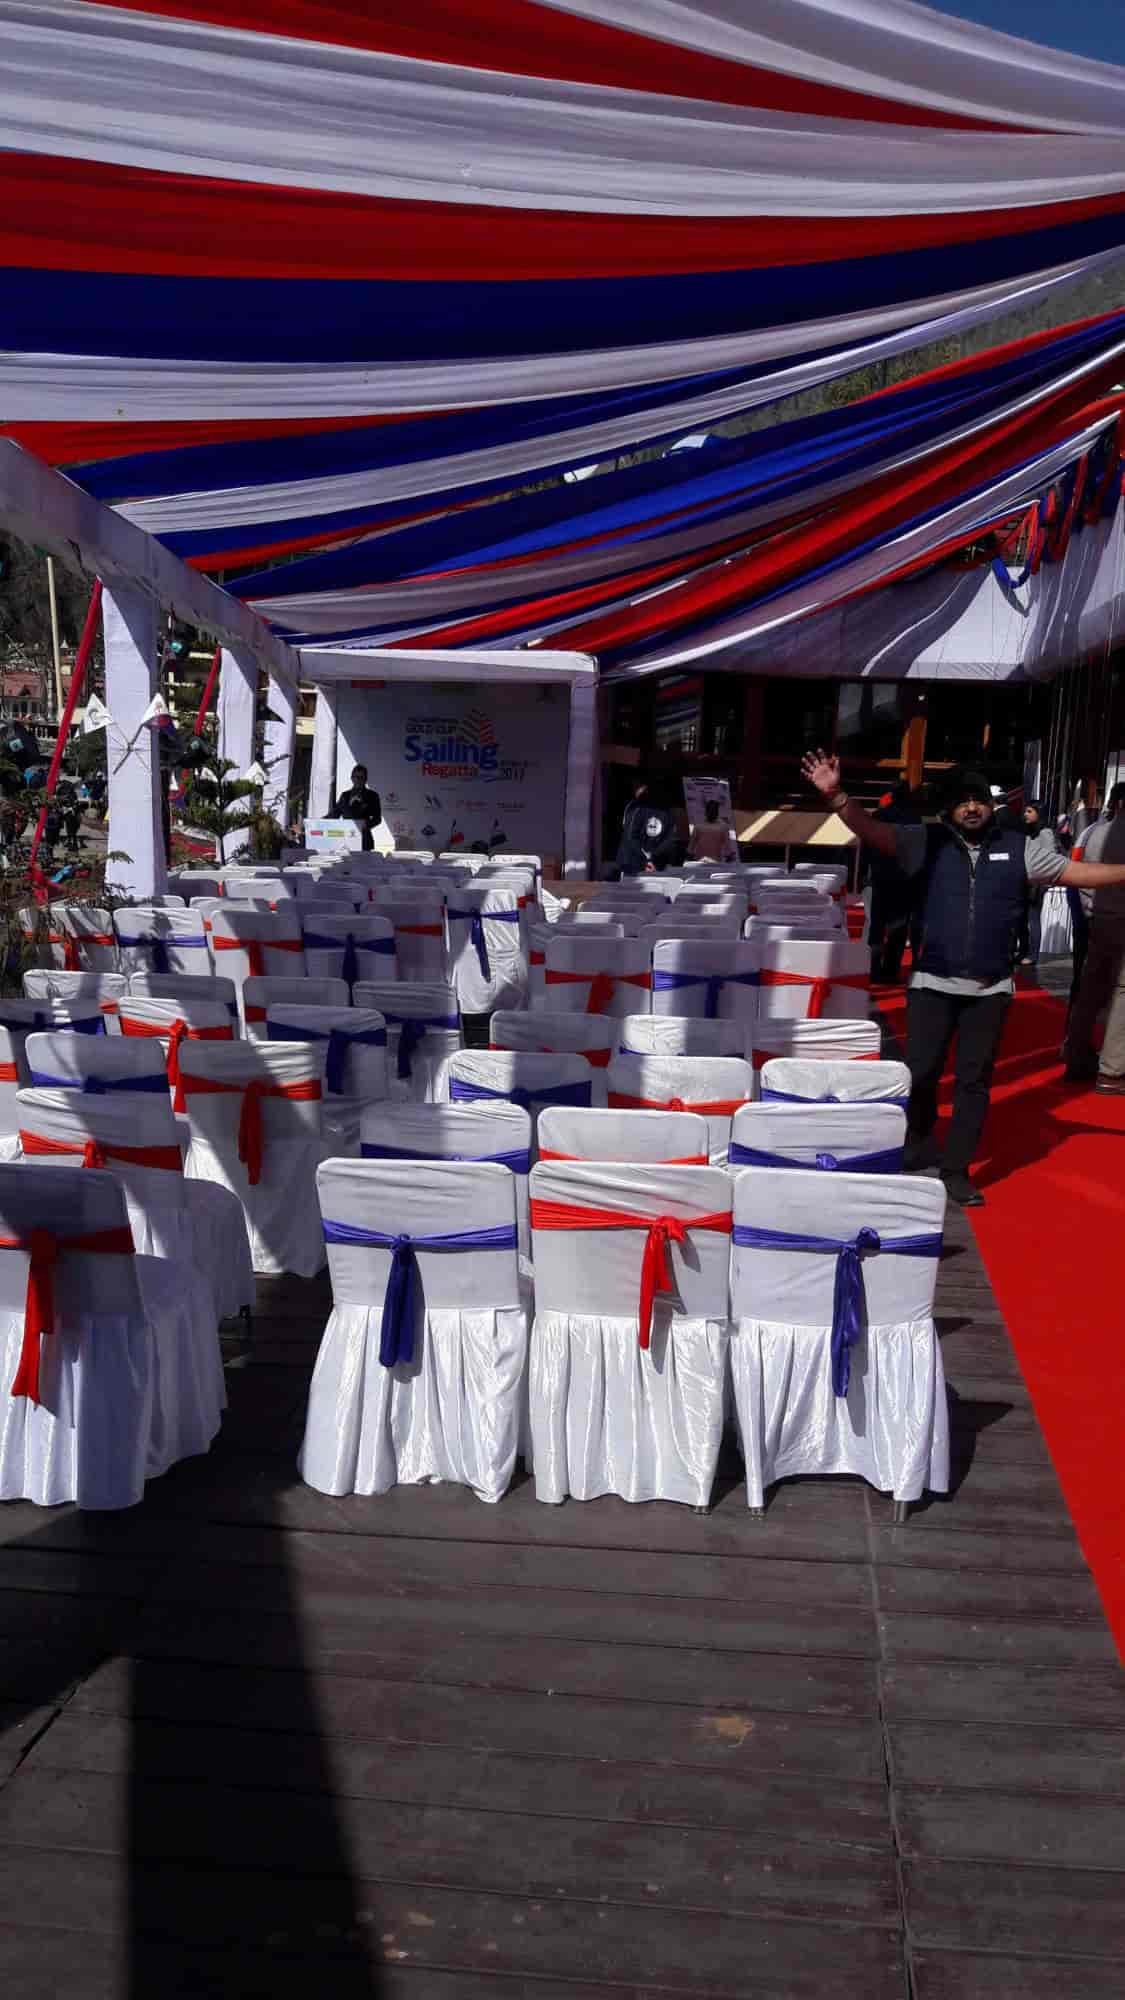 & Kandpal Caterers - Caterers in Nainital - Justdial